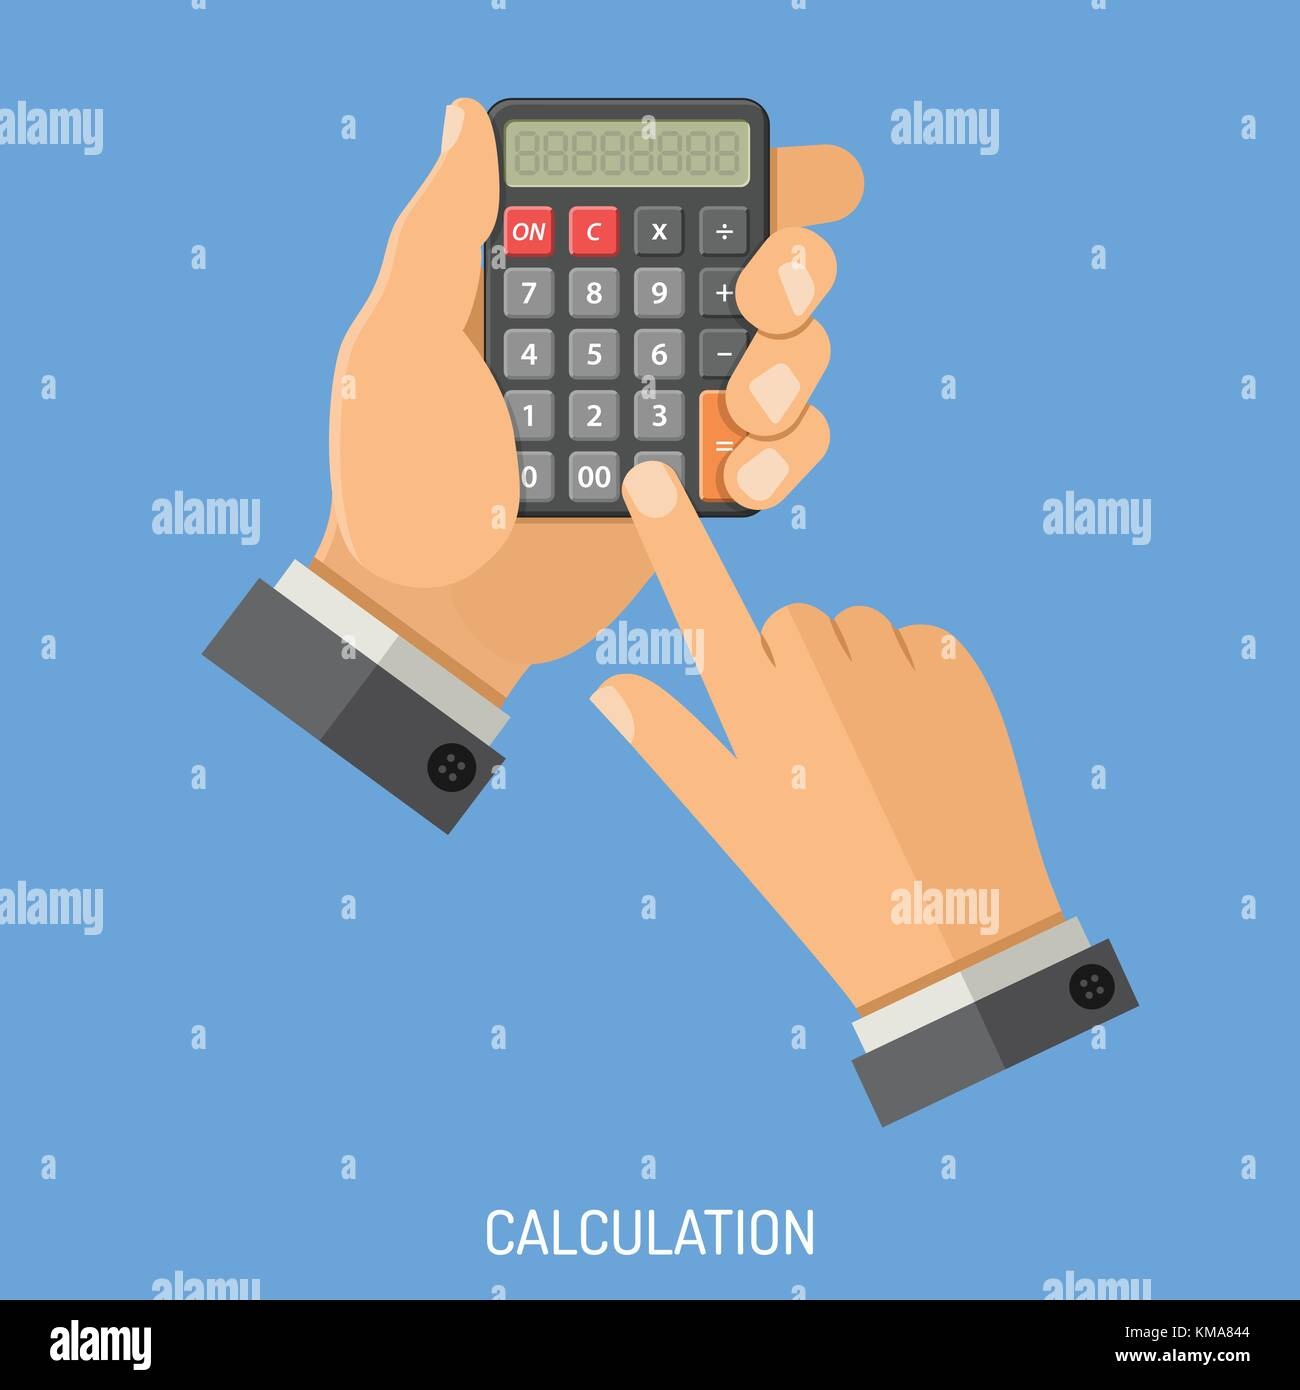 Calculation and Counting Concept - Stock Image